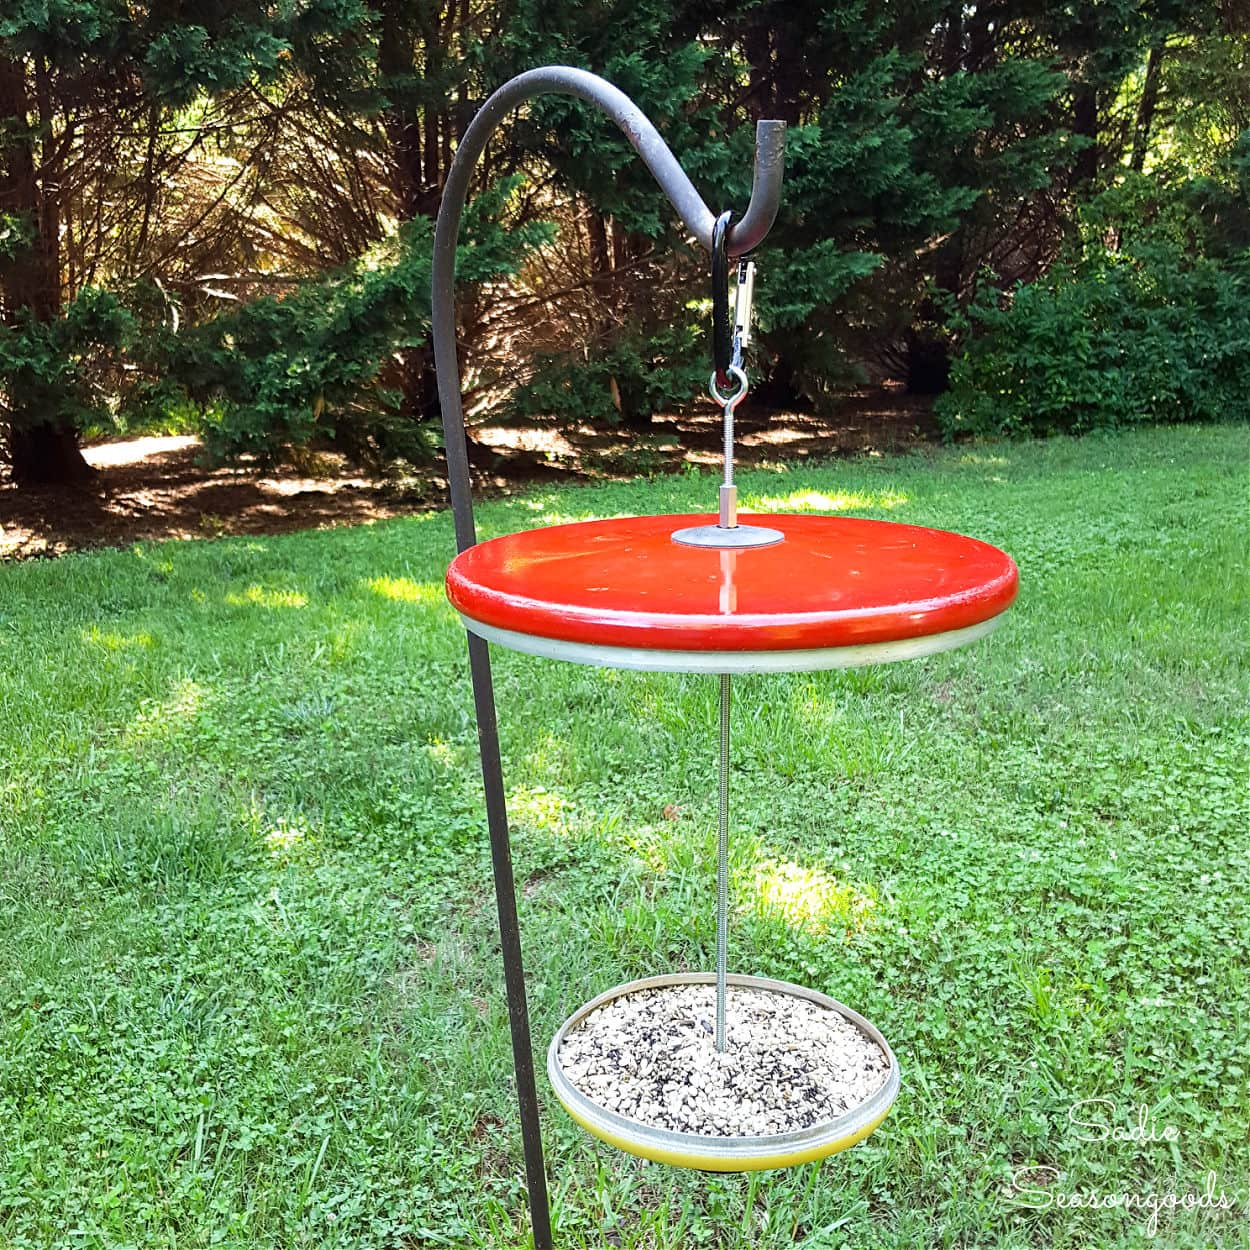 Platform Bird Feeder from Repurposed Pot Lids